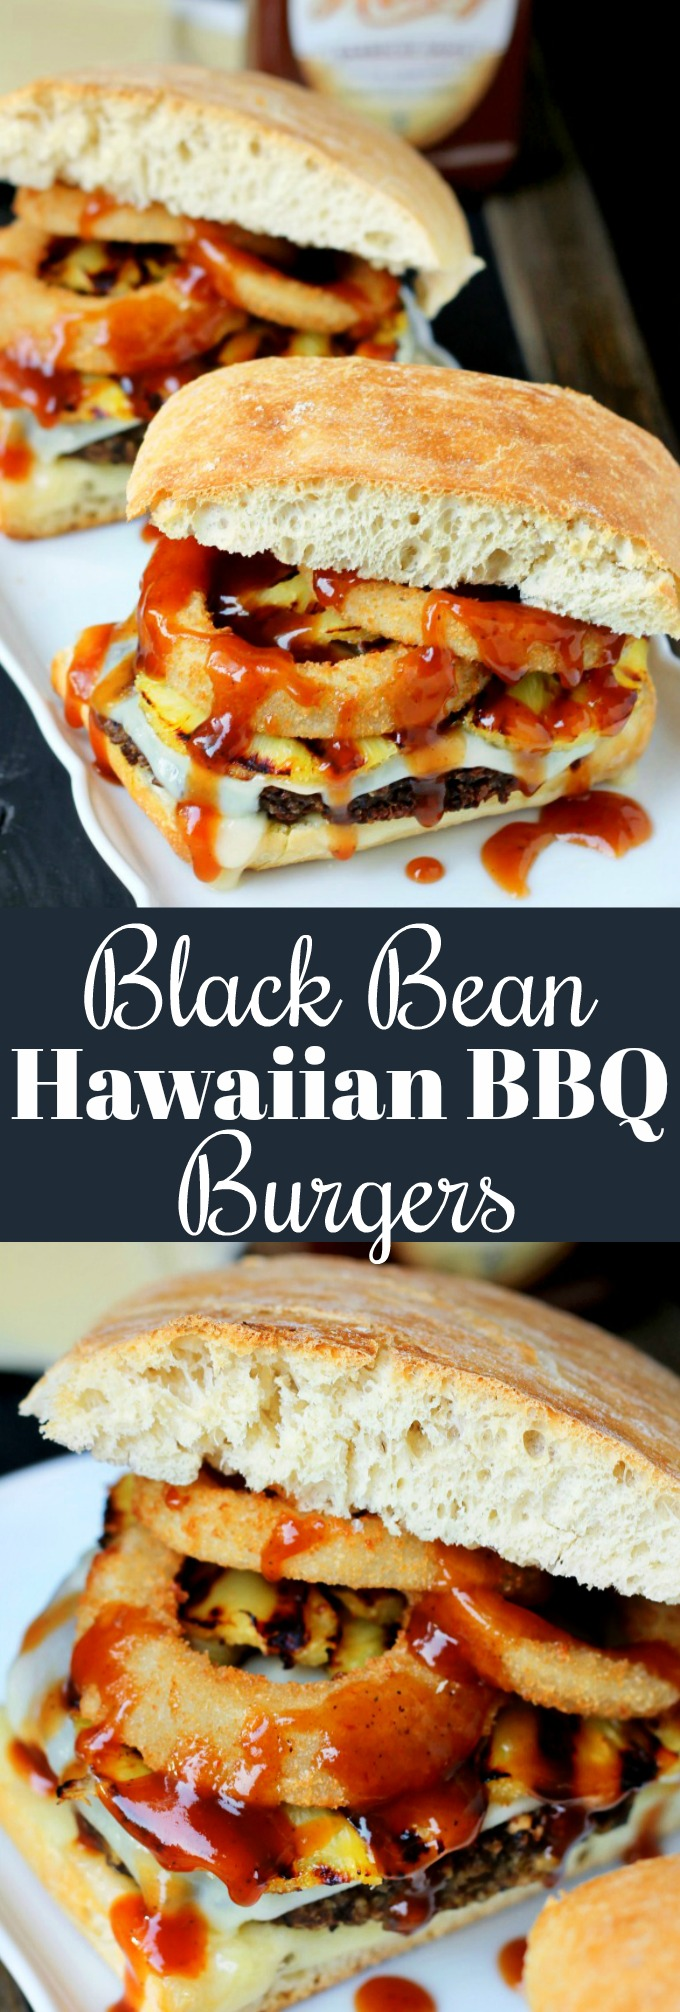 These Spicy Black Bean Hawaiian BBQ Burgers will be a hit at your next BBQ, and even the meat eaters will be asking for this recipe!